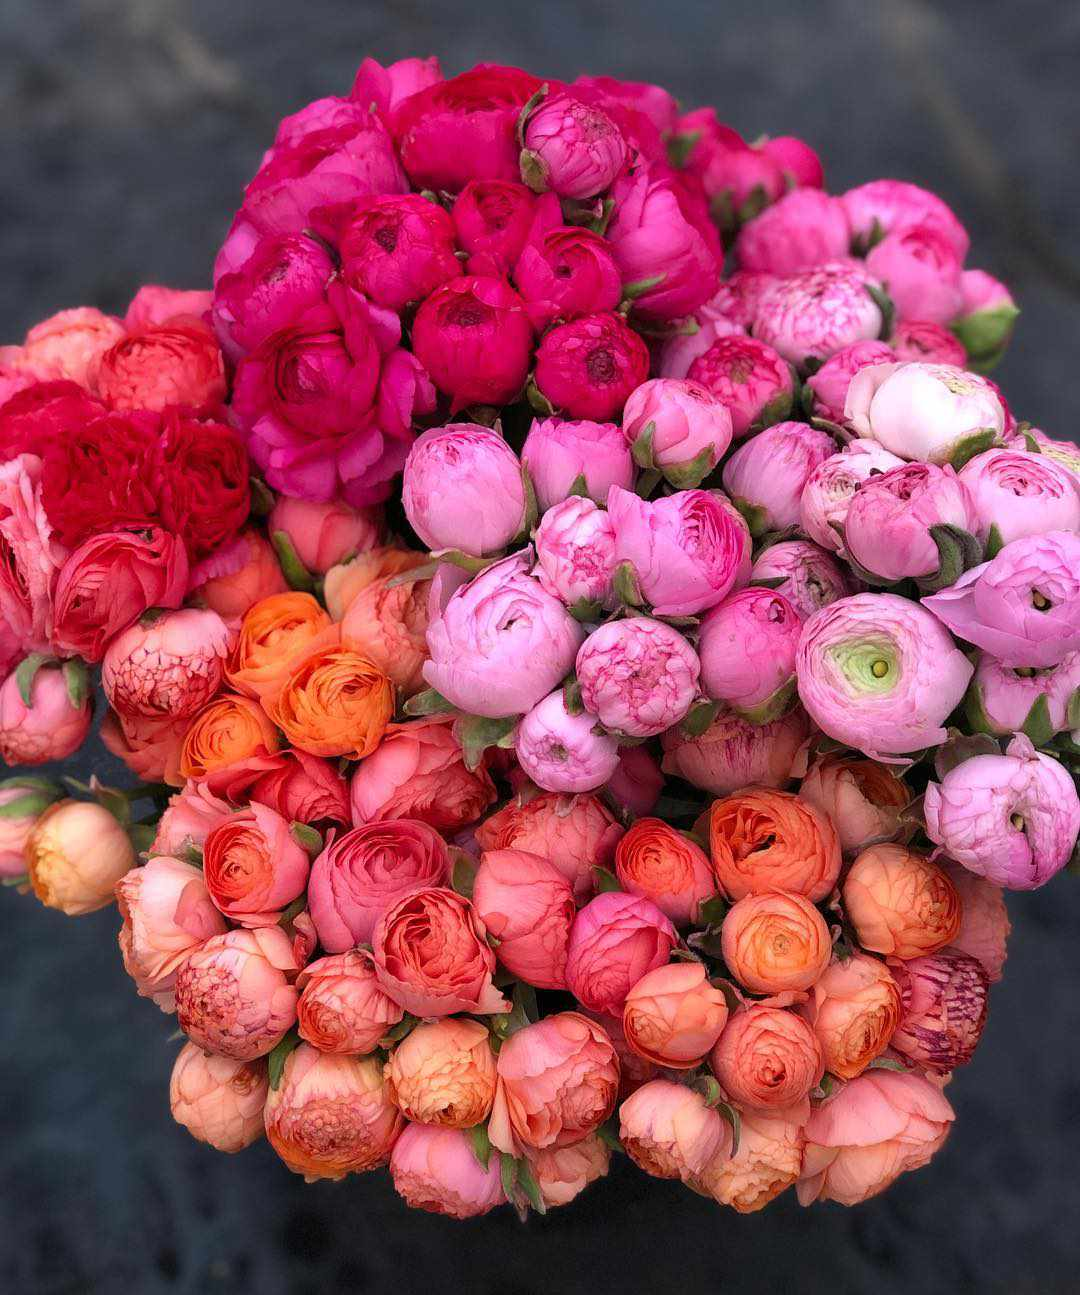 Pink, red, and orange flowers